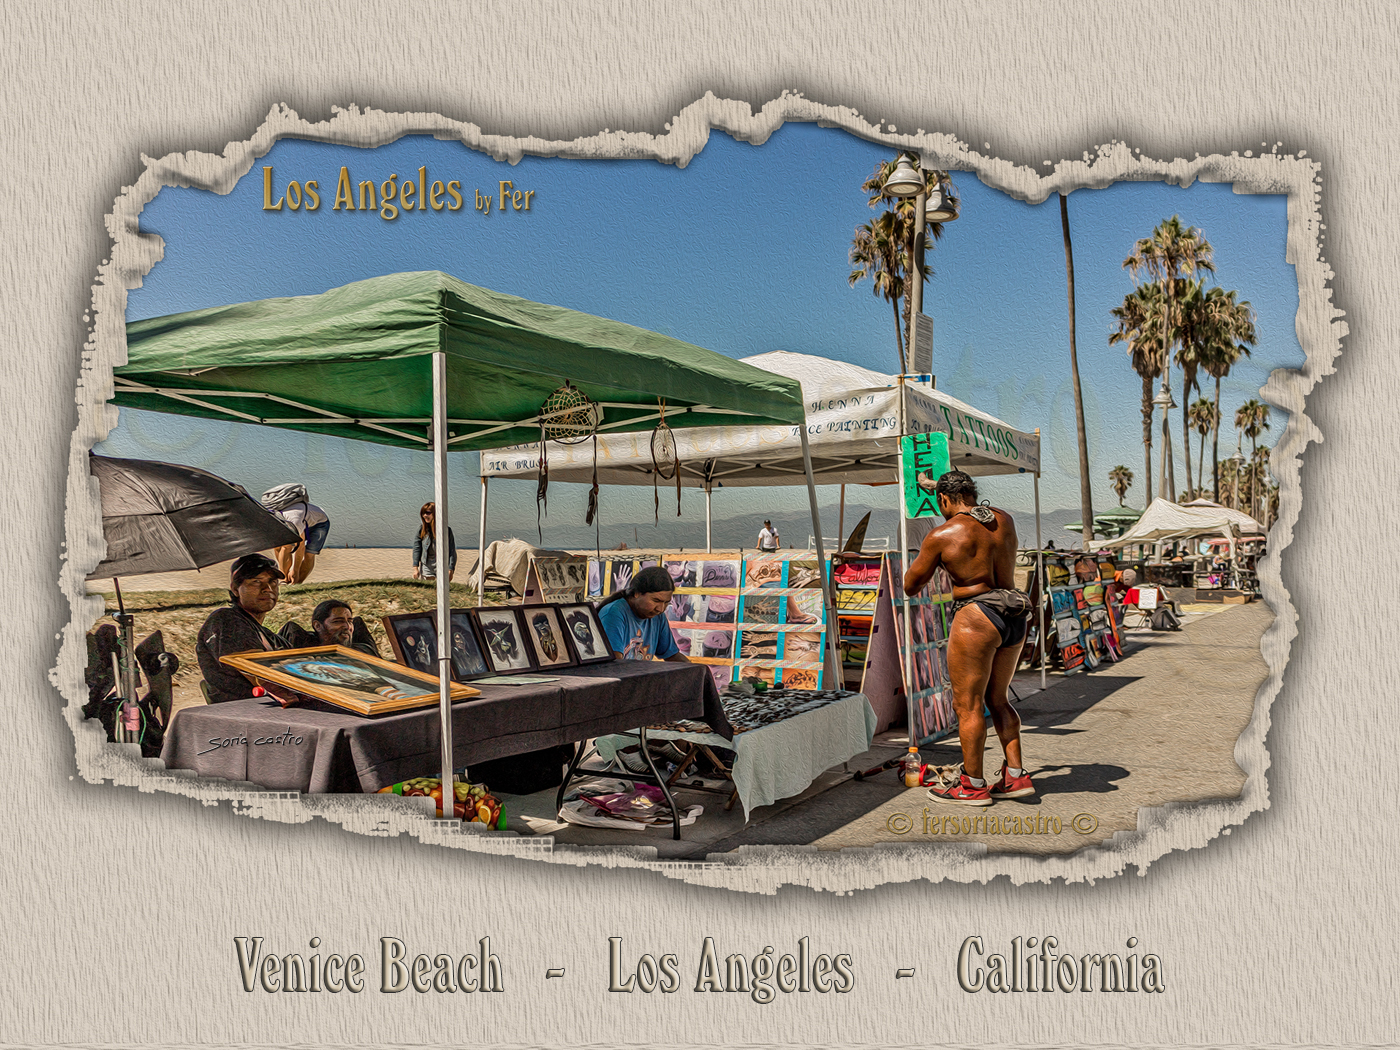 Venice Beach   -   Los Angeles   -   California